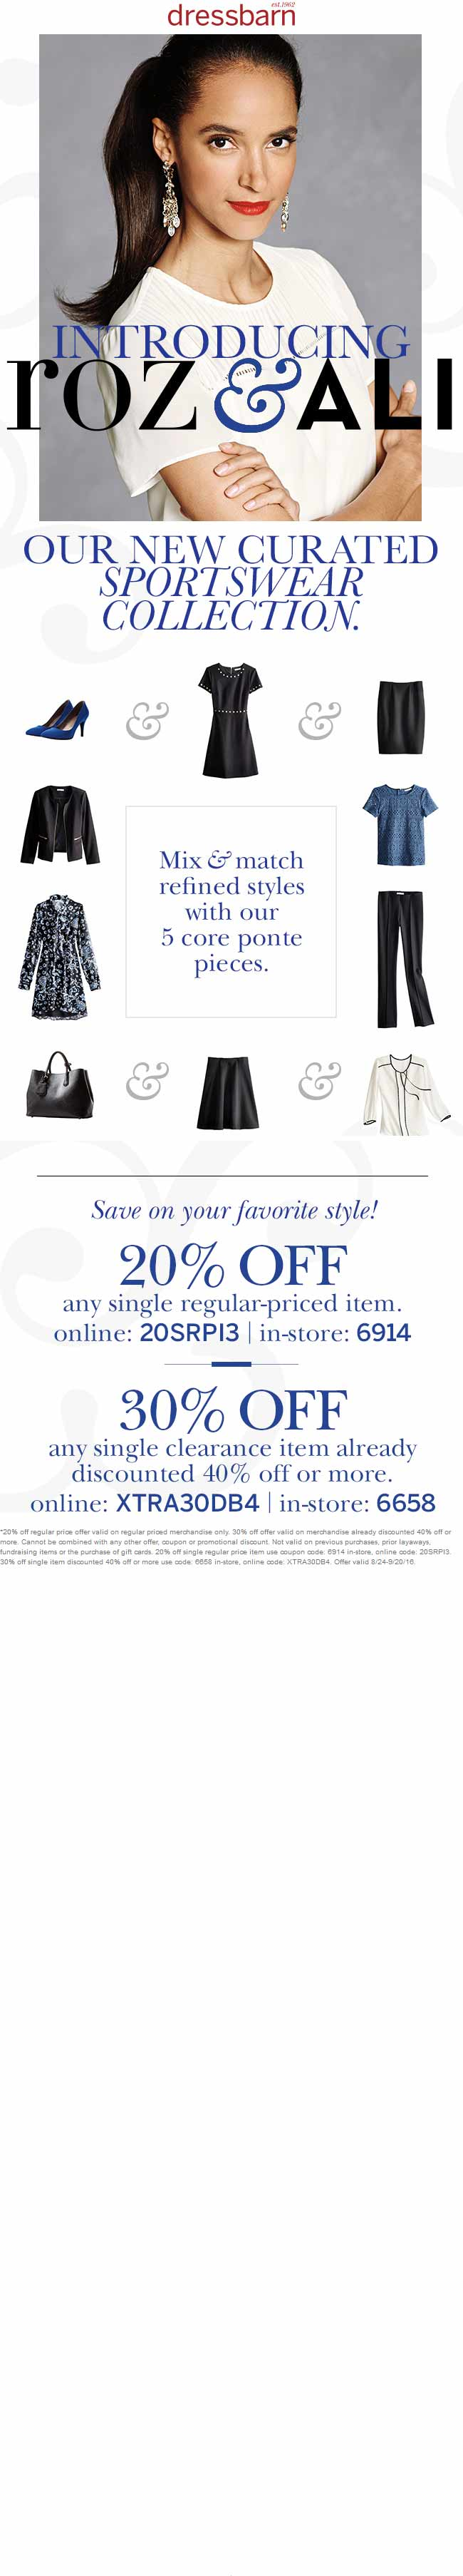 Dressbarn.com Promo Coupon 20-30% off at Dressbarn, or online via promo code 20SRP13